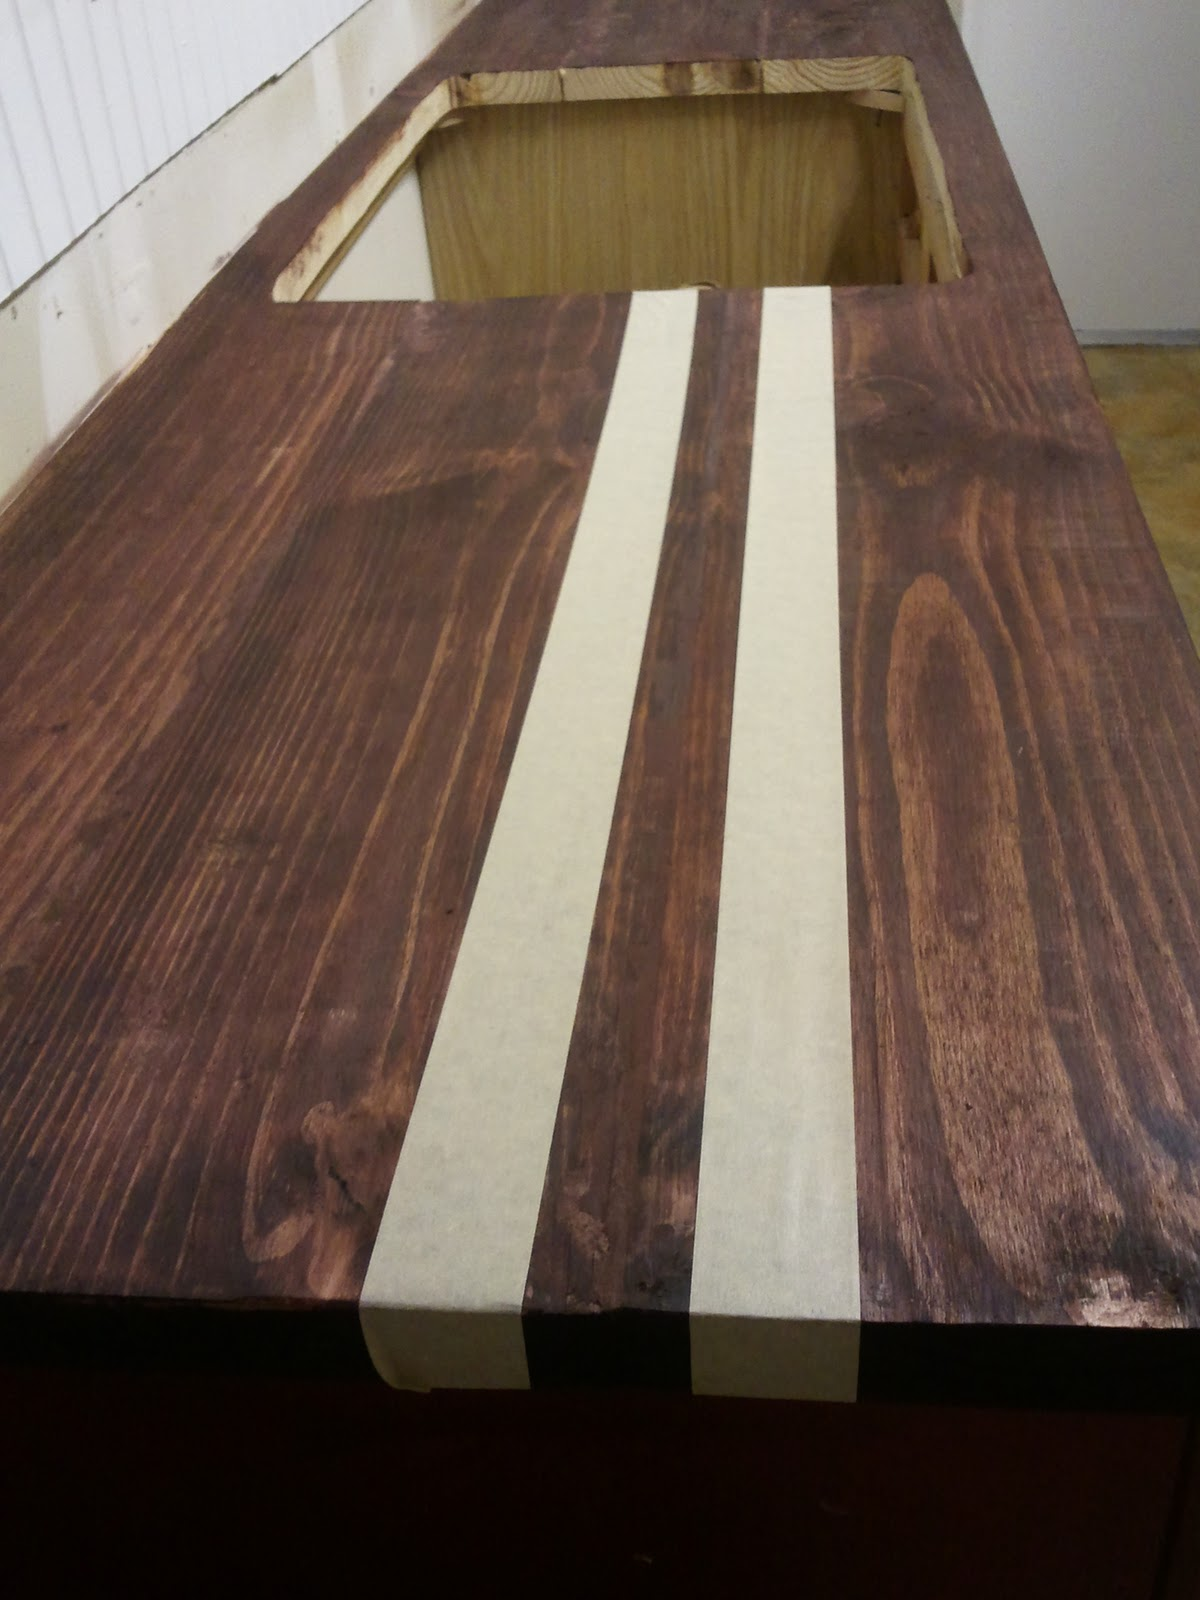 Use Tape to Tape of Sections on the Wood - DIY Faux Butcher Block Countertops Tutorial